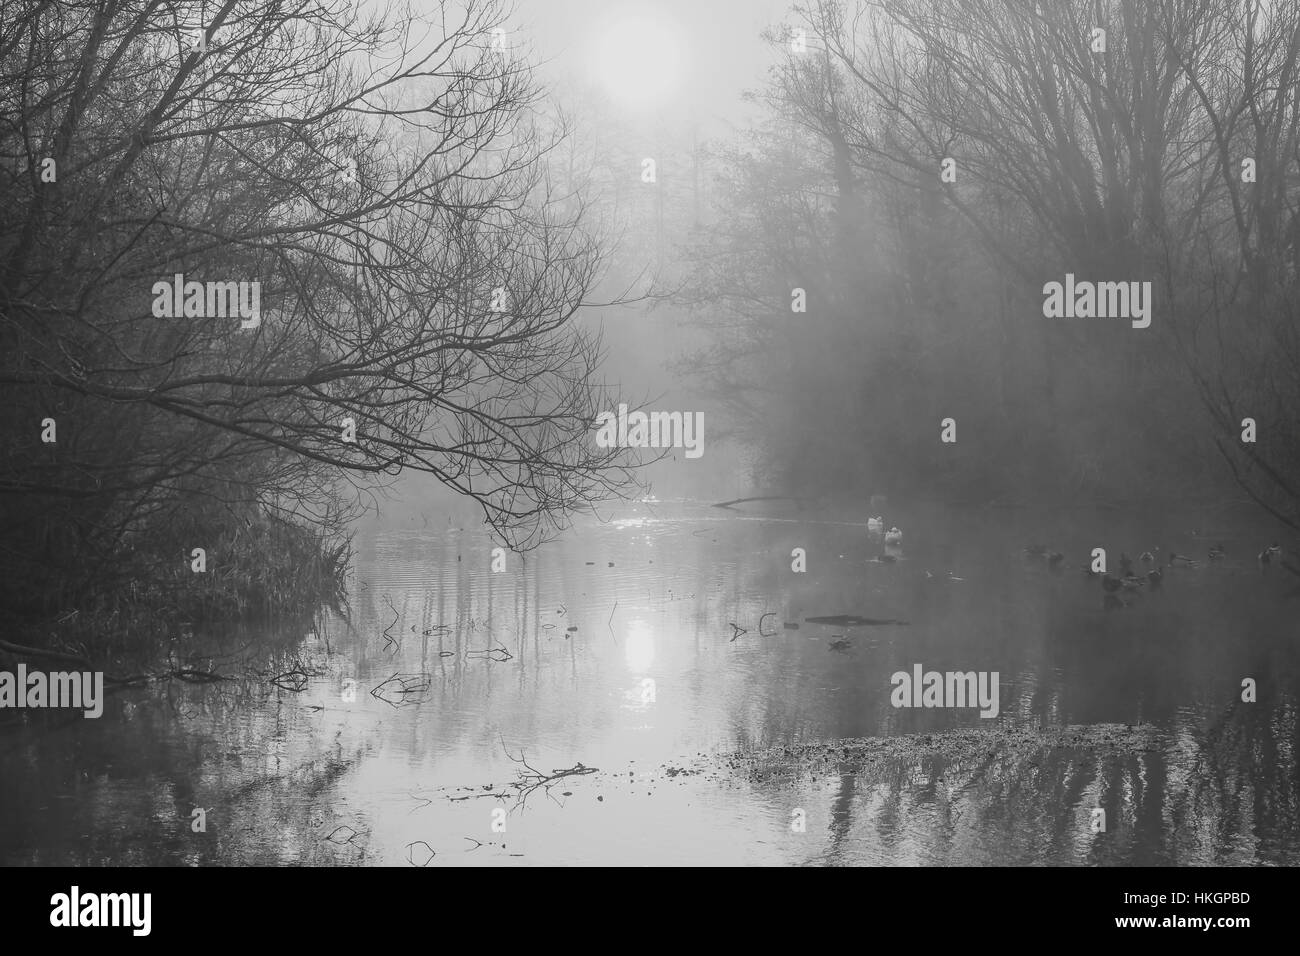 Fog swirls over a the surface of lake and between bare trees - Stock Image